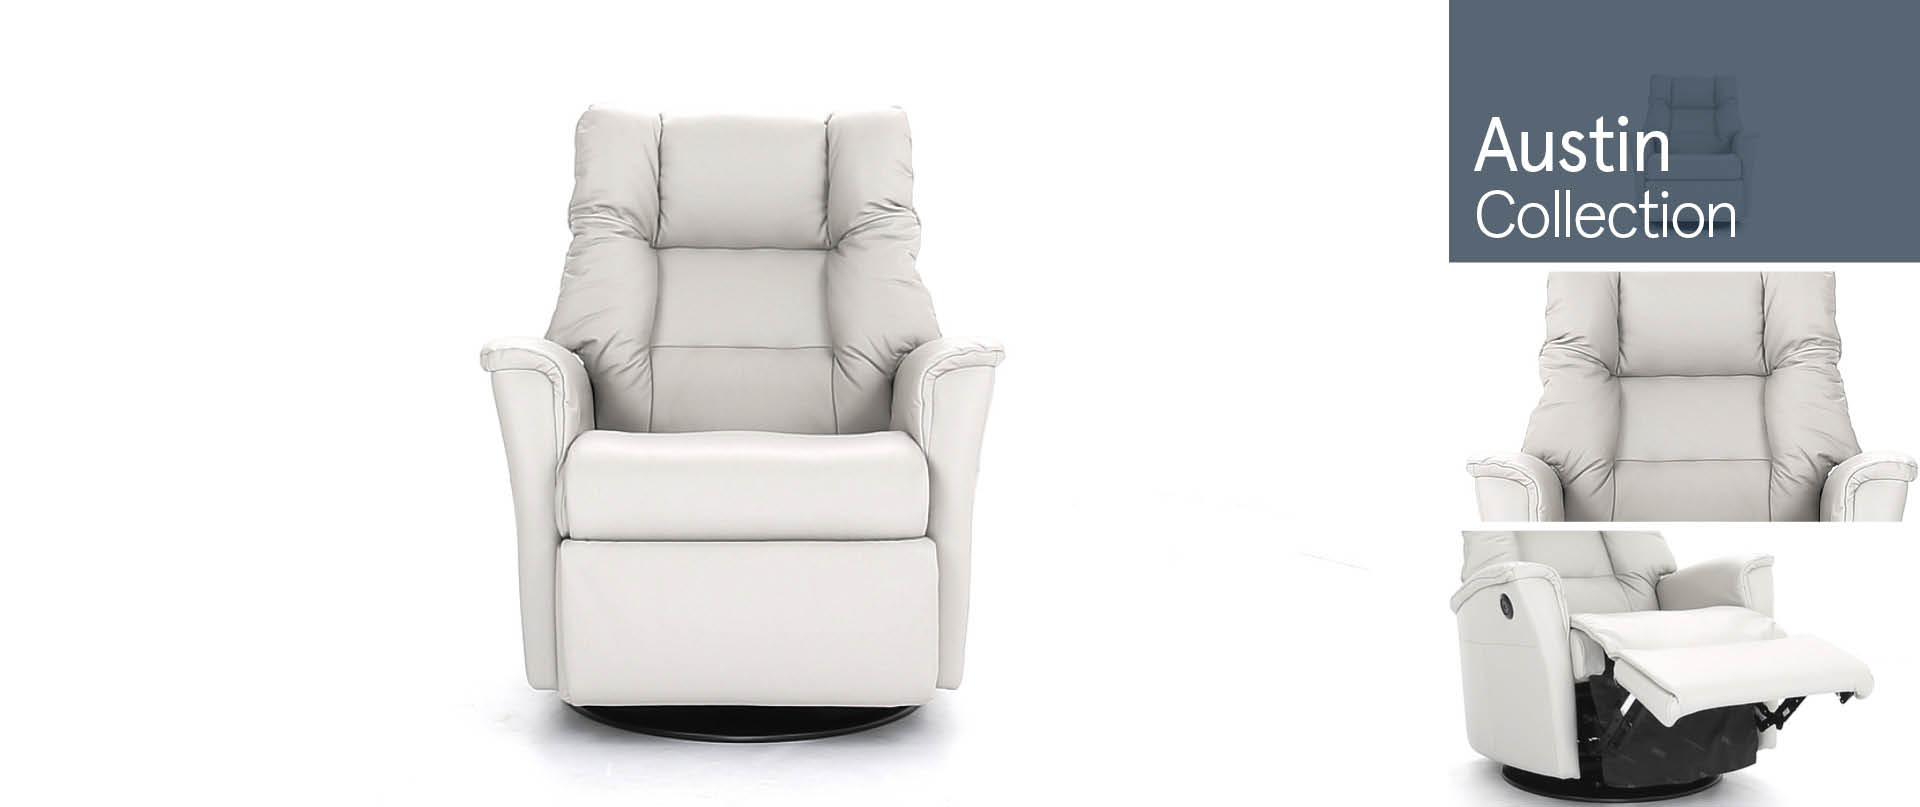 Austin Chairs and Footstools Ranges